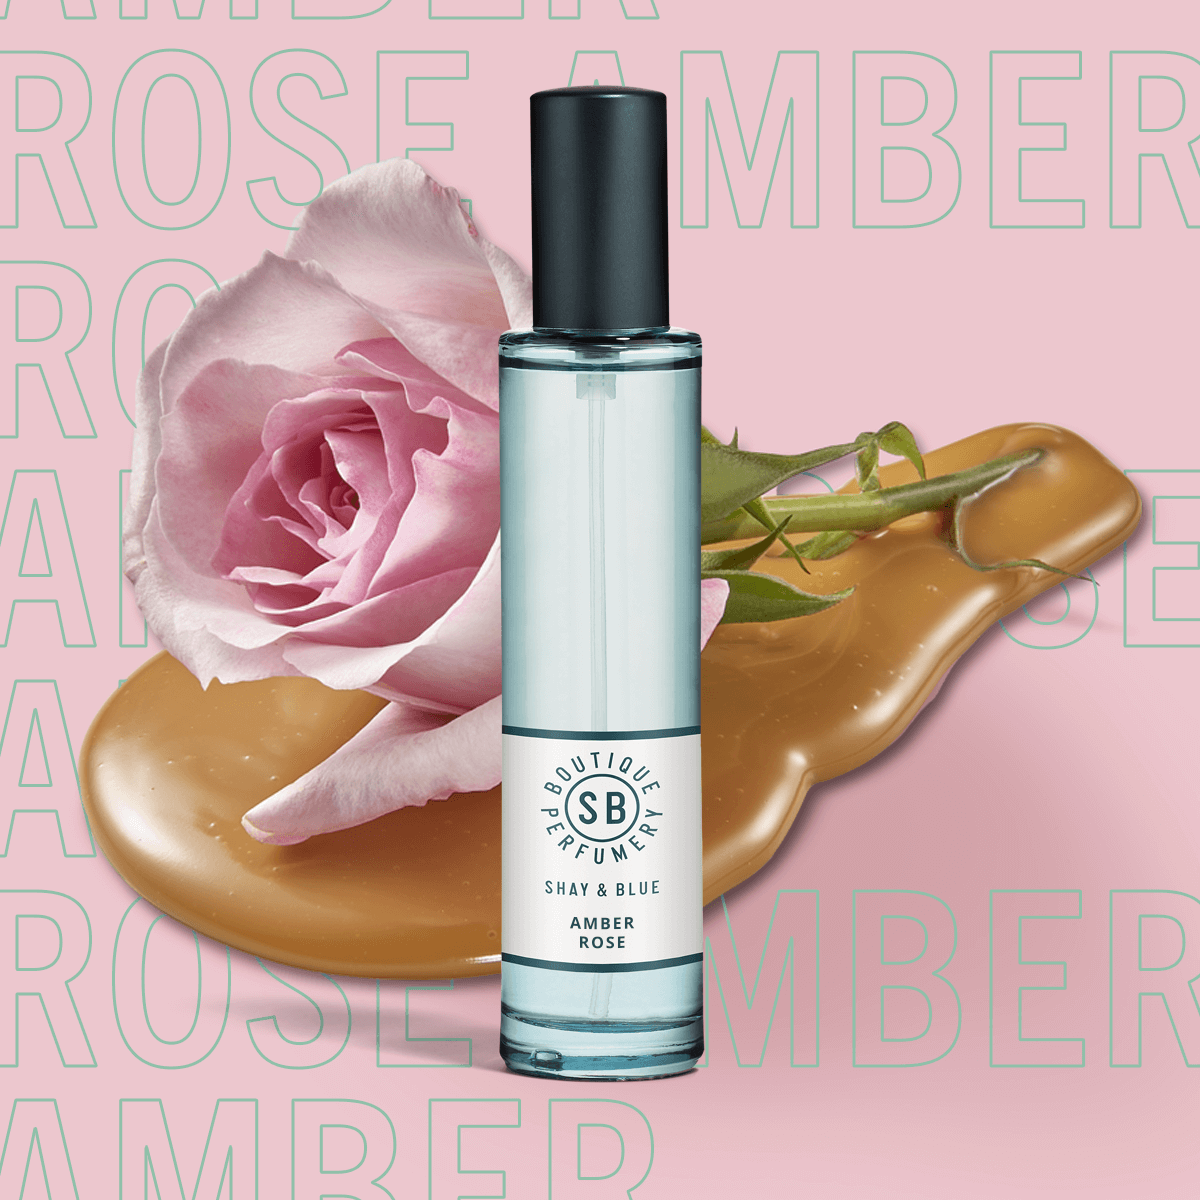 Amber Rose Fragrance 30ml | New season May Rose is blended with white amber and sweet creamy notes. | Clean All Gender Fragrance | Shay & Blue